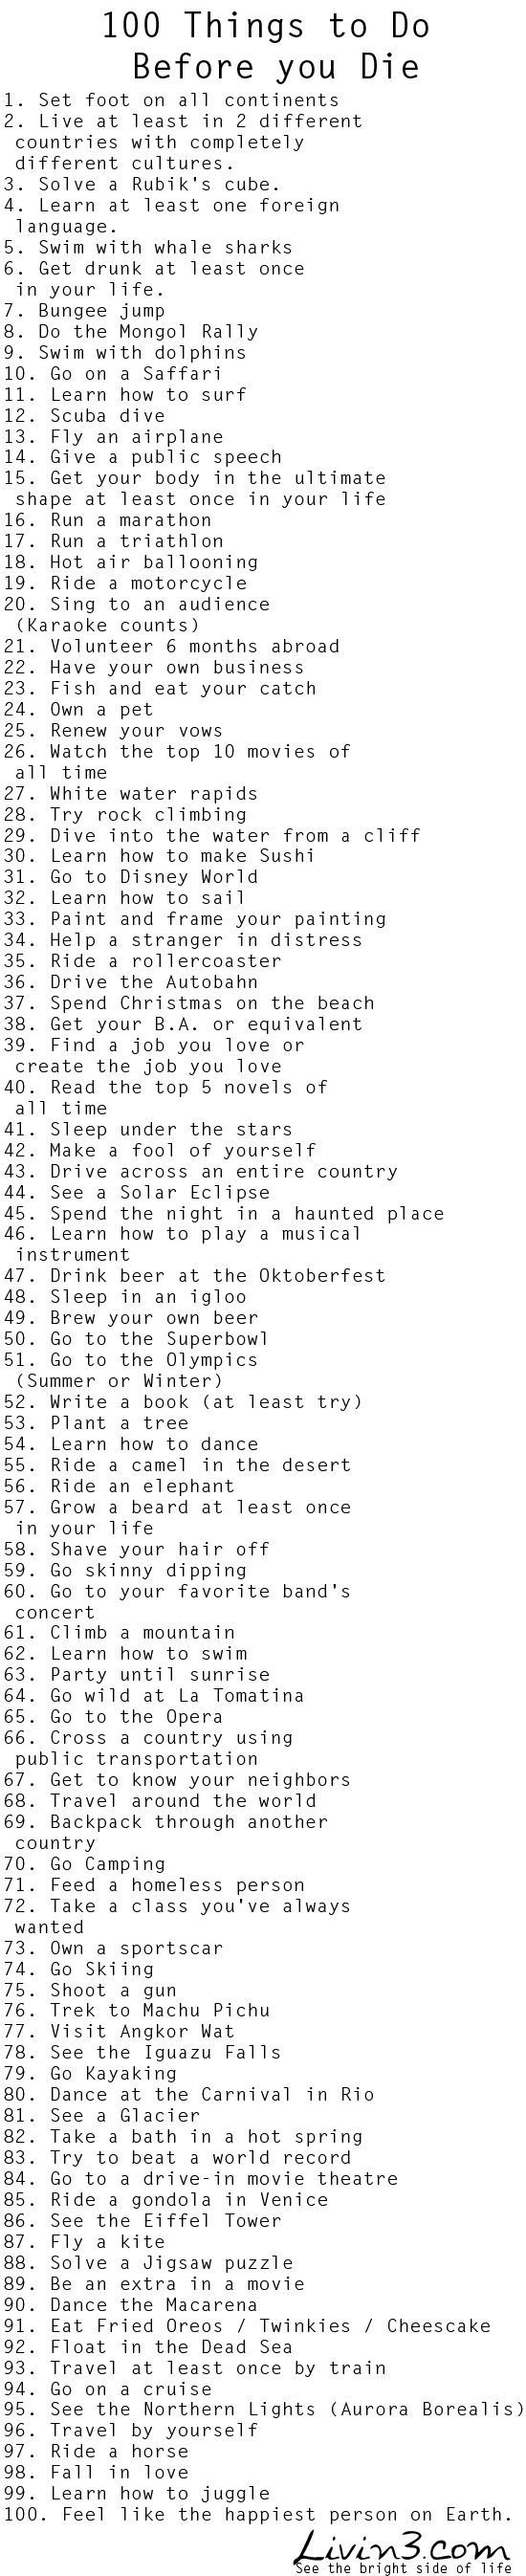 Ultimate bucket list